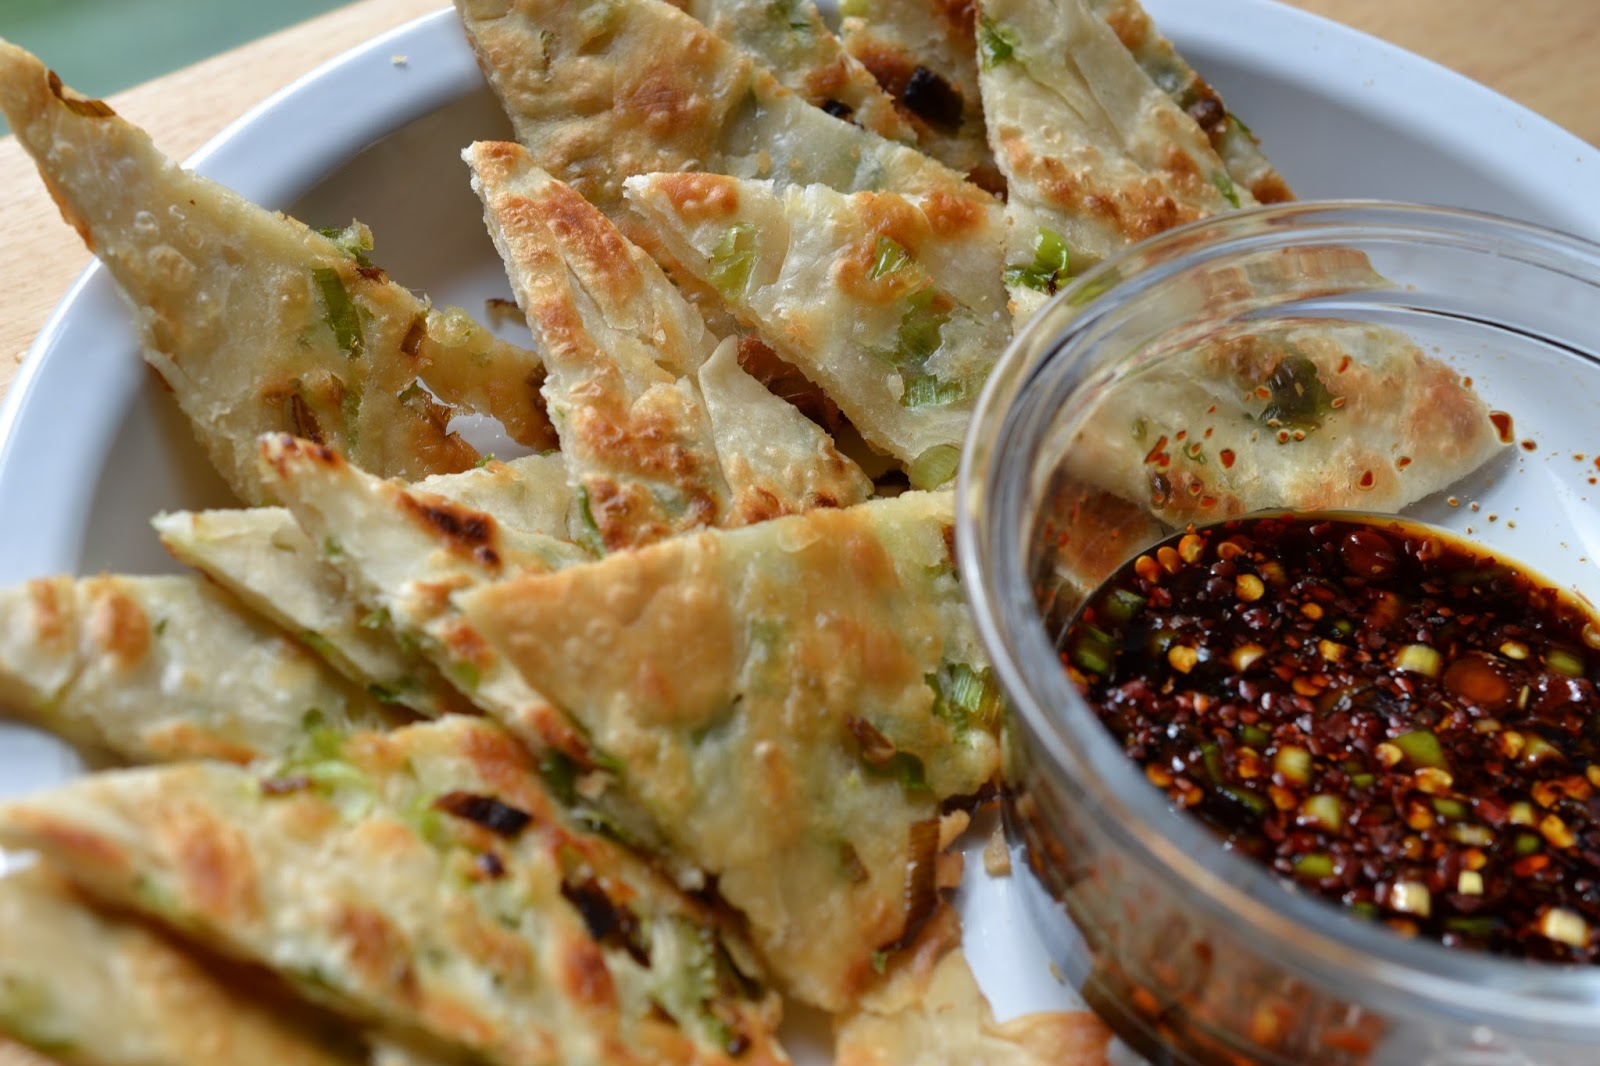 Greedy Girl : Scallion Pancakes with Spicy Soy Sauce